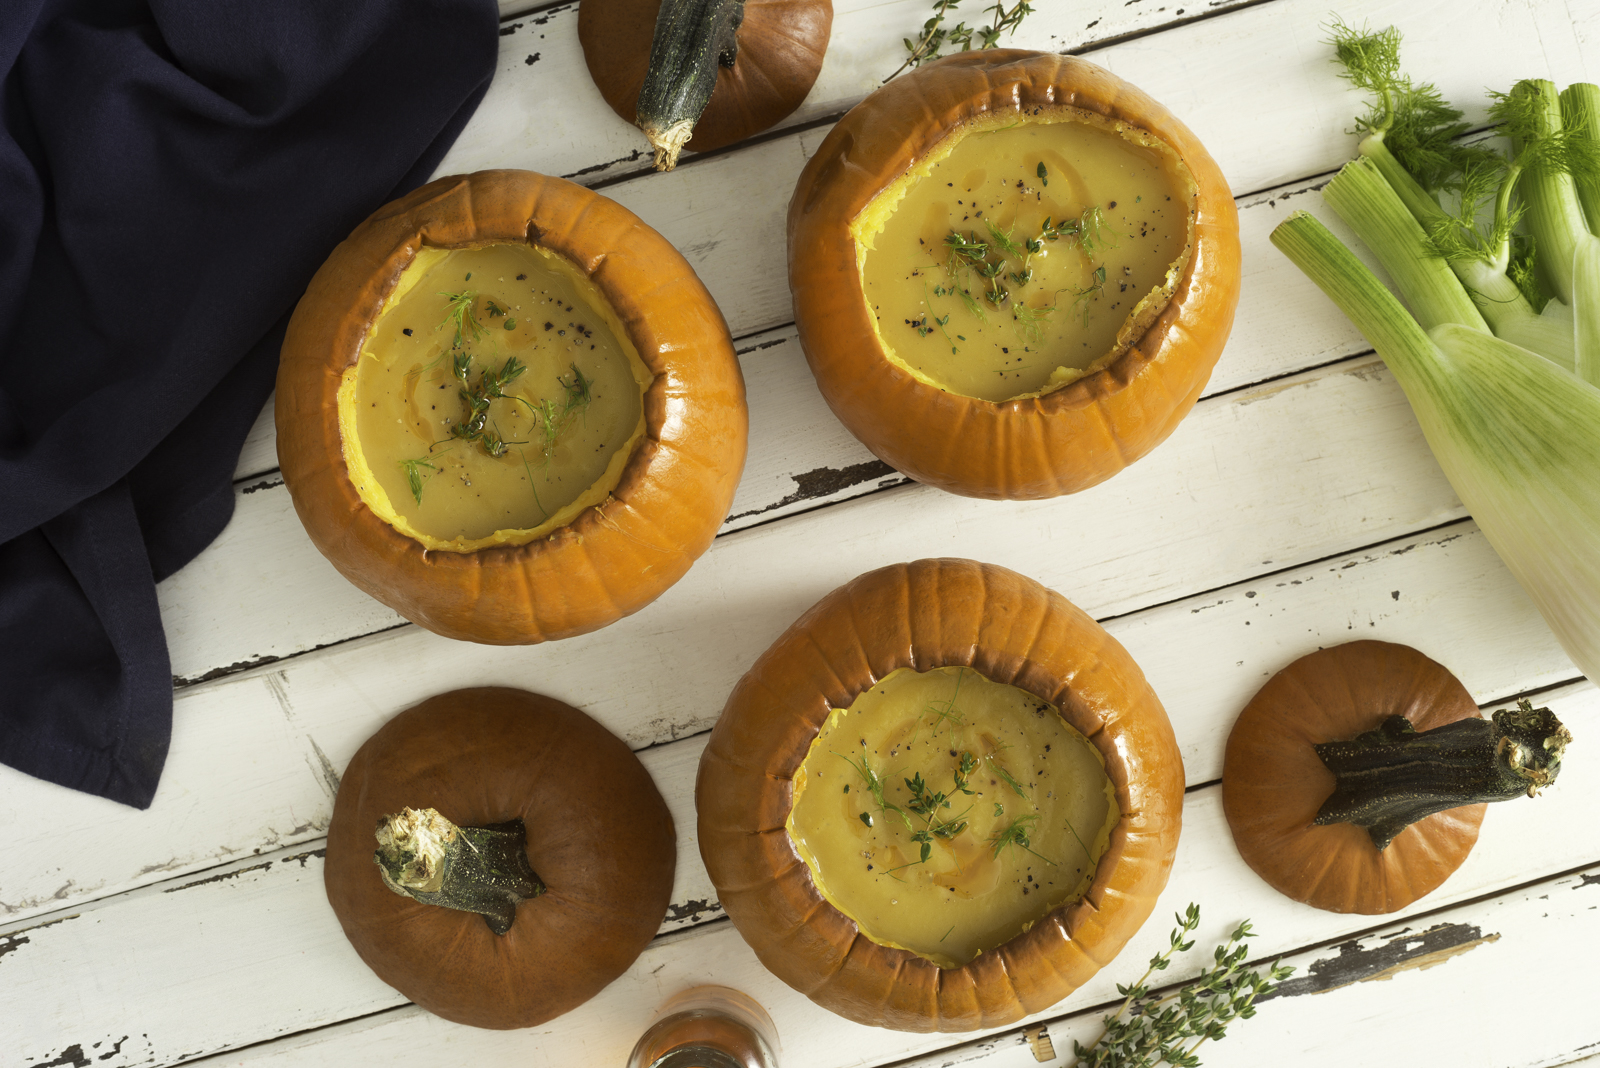 Pumpkin and Fennel Soup with Chili Oil